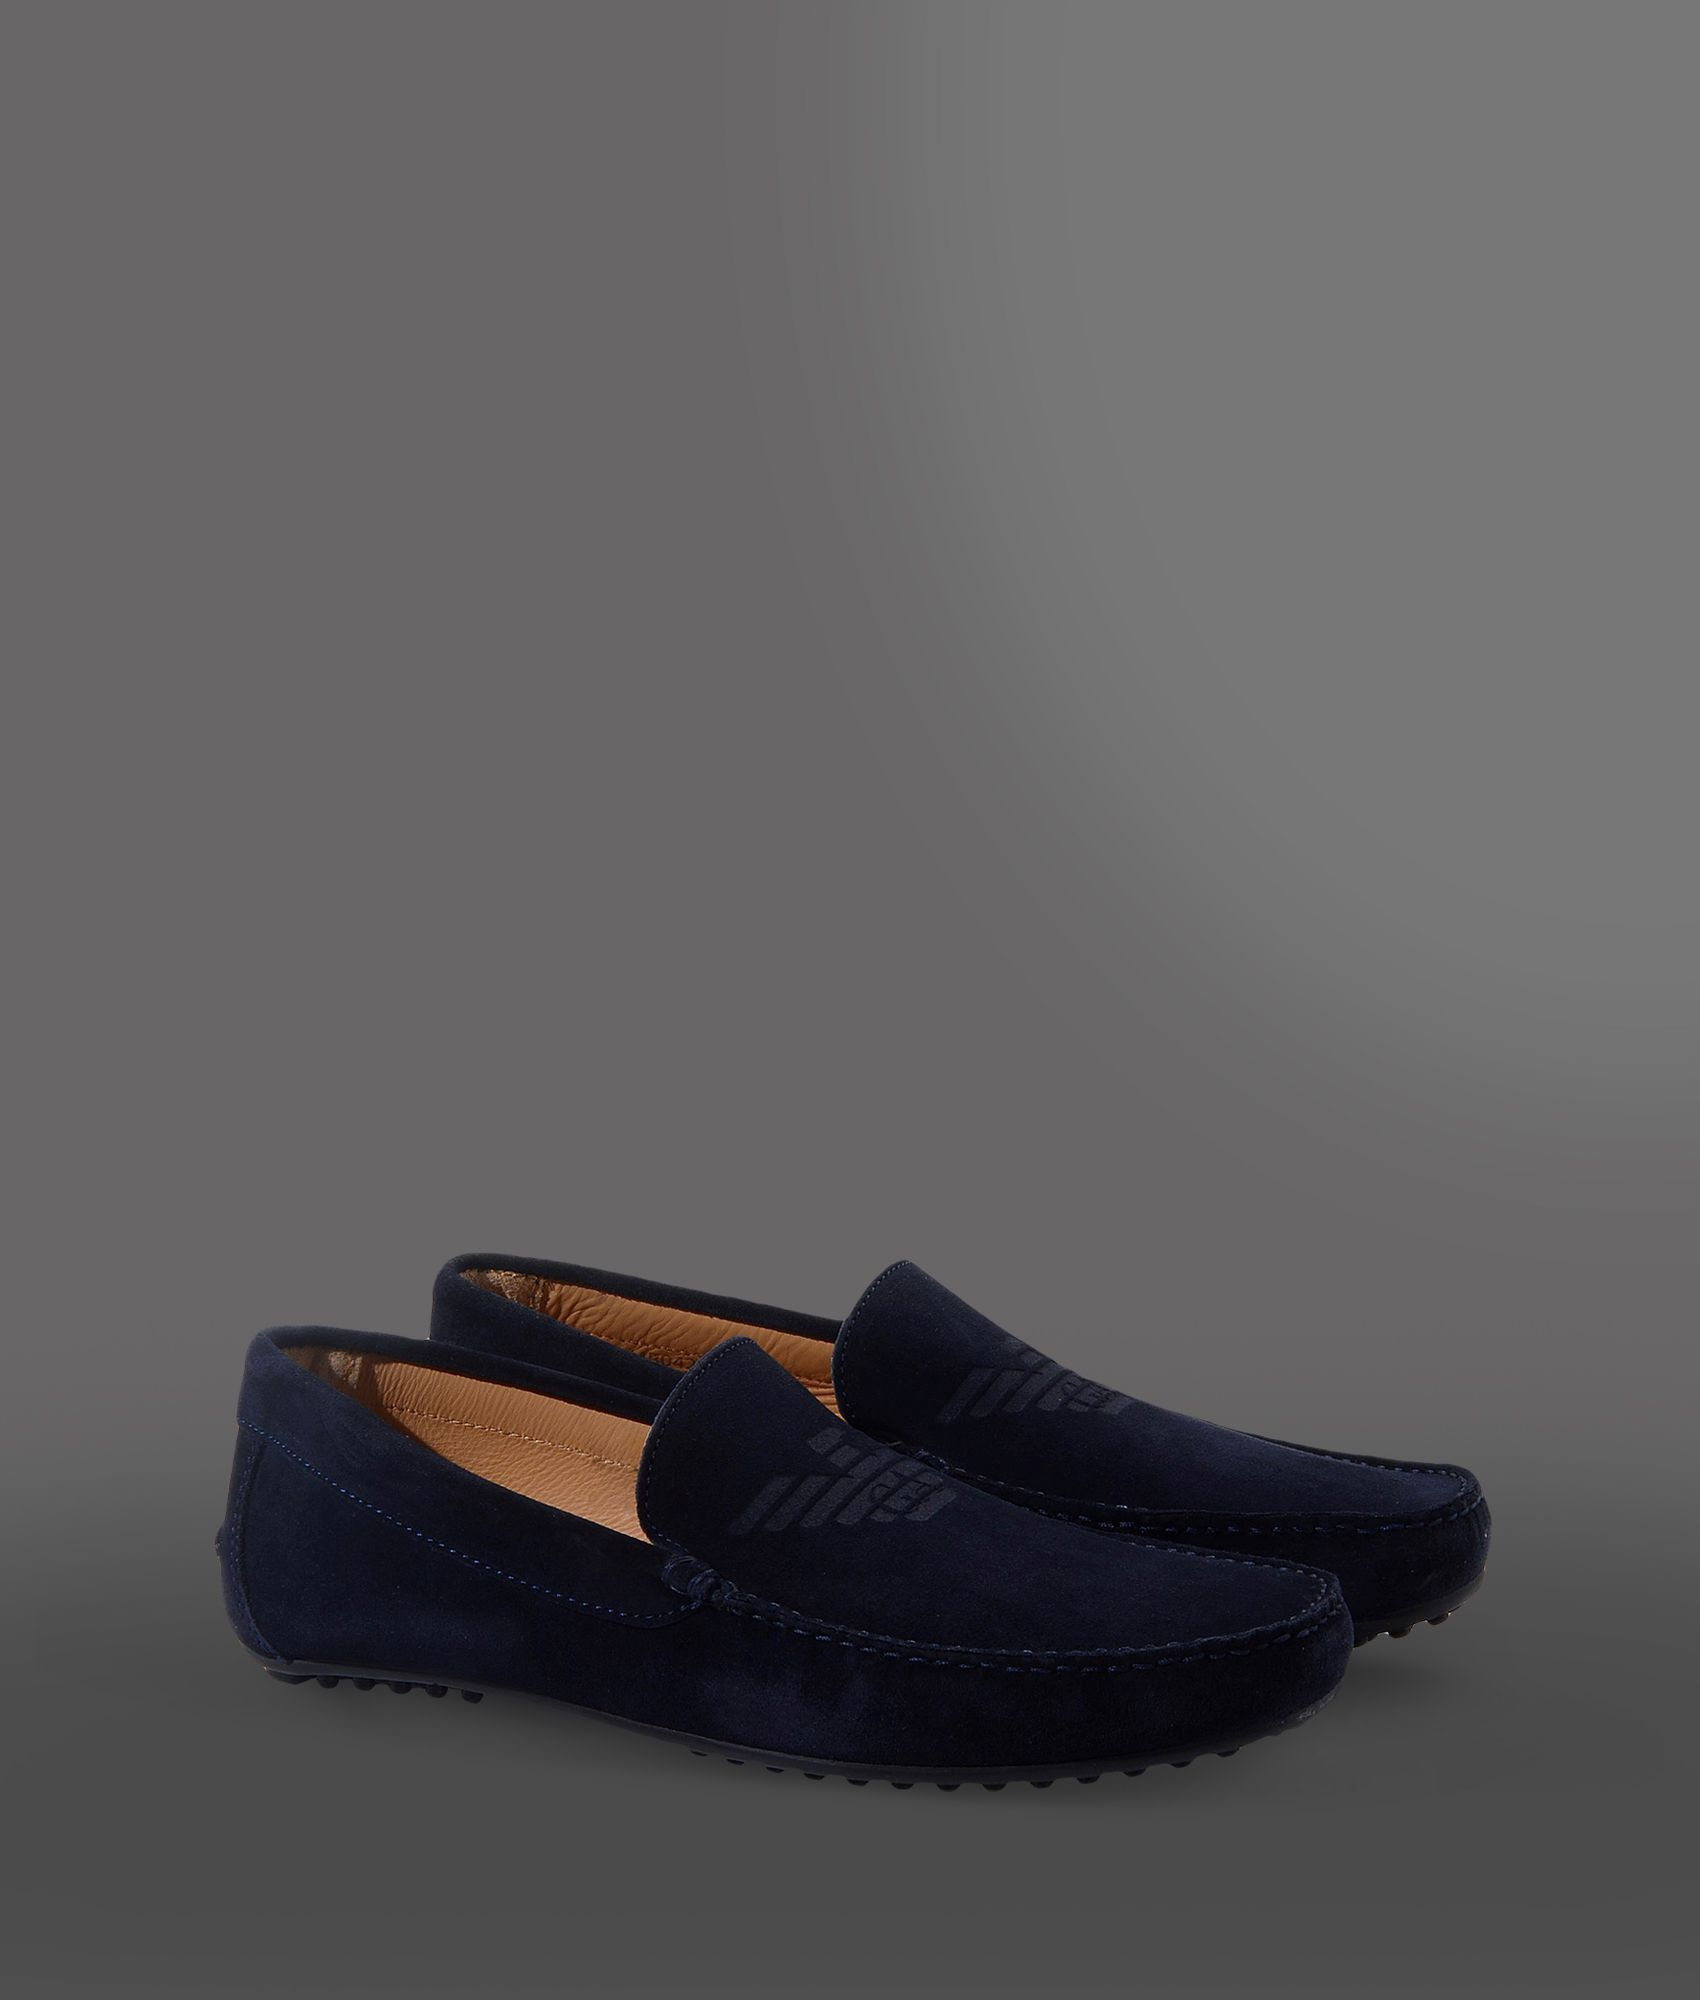 ae01b0a3301a Lyst - Emporio Armani Loafers in Blue for Men